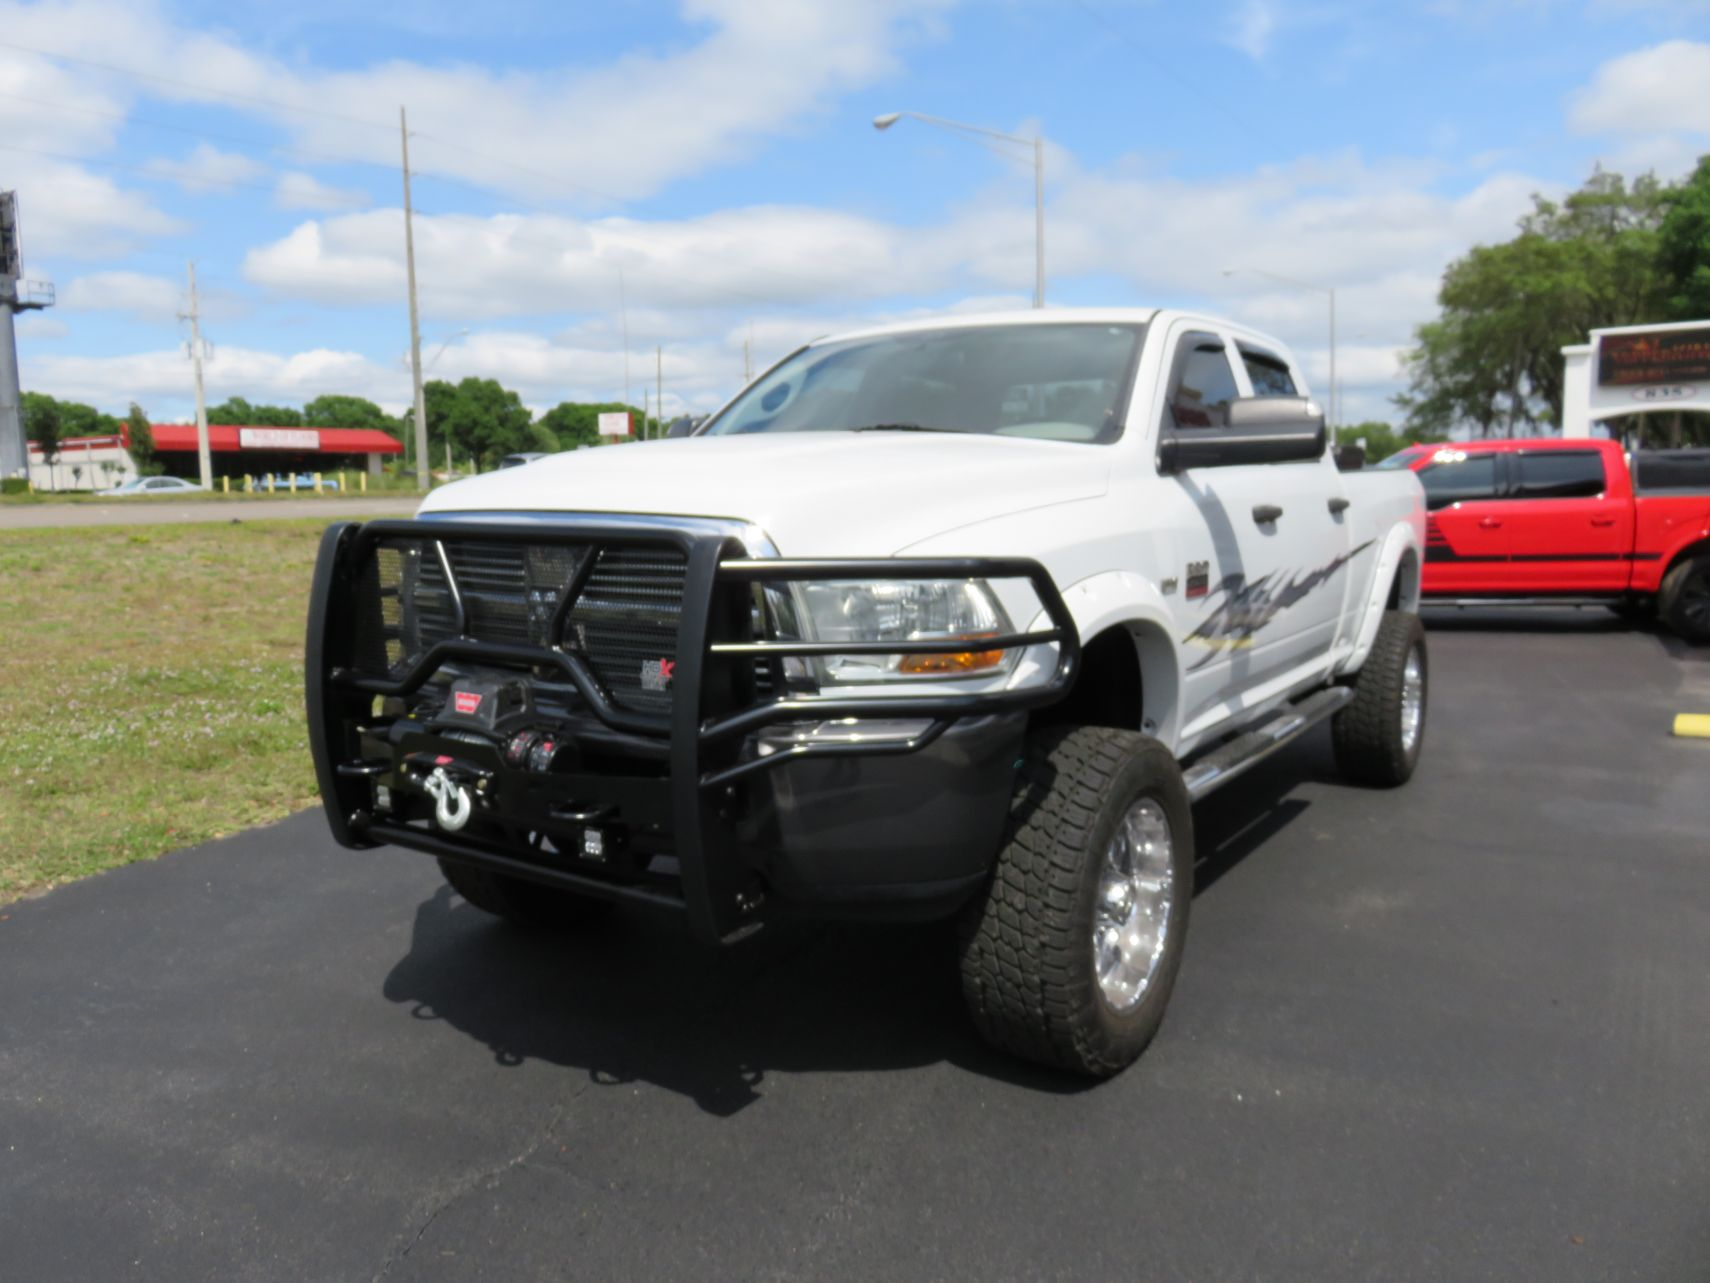 2011 Dodge Ram with Graphics, Grill Guard, Tool Box, Vent Visors, Hitch by TopperKING in Brandon FL 813-689-2449 or Clearwater FL 727-530-9066. Call today!